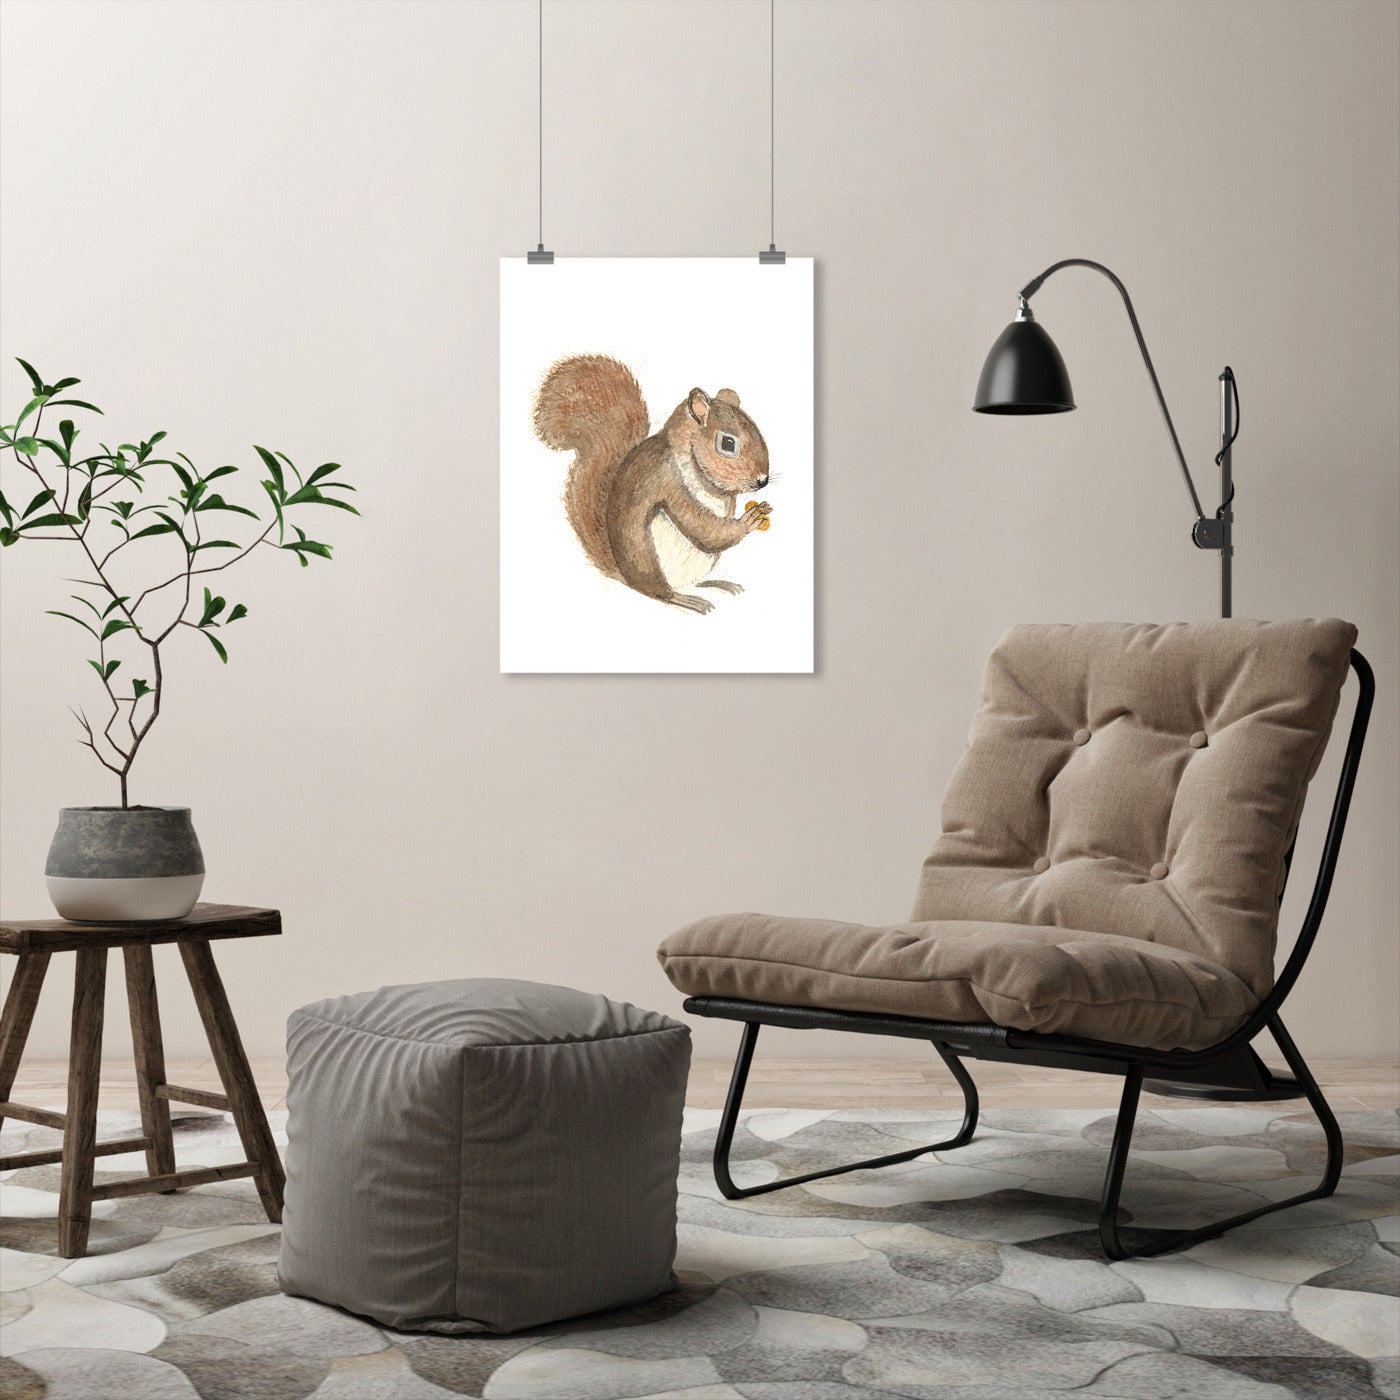 Squirrel by Cami Monet - Art Print - Americanflat